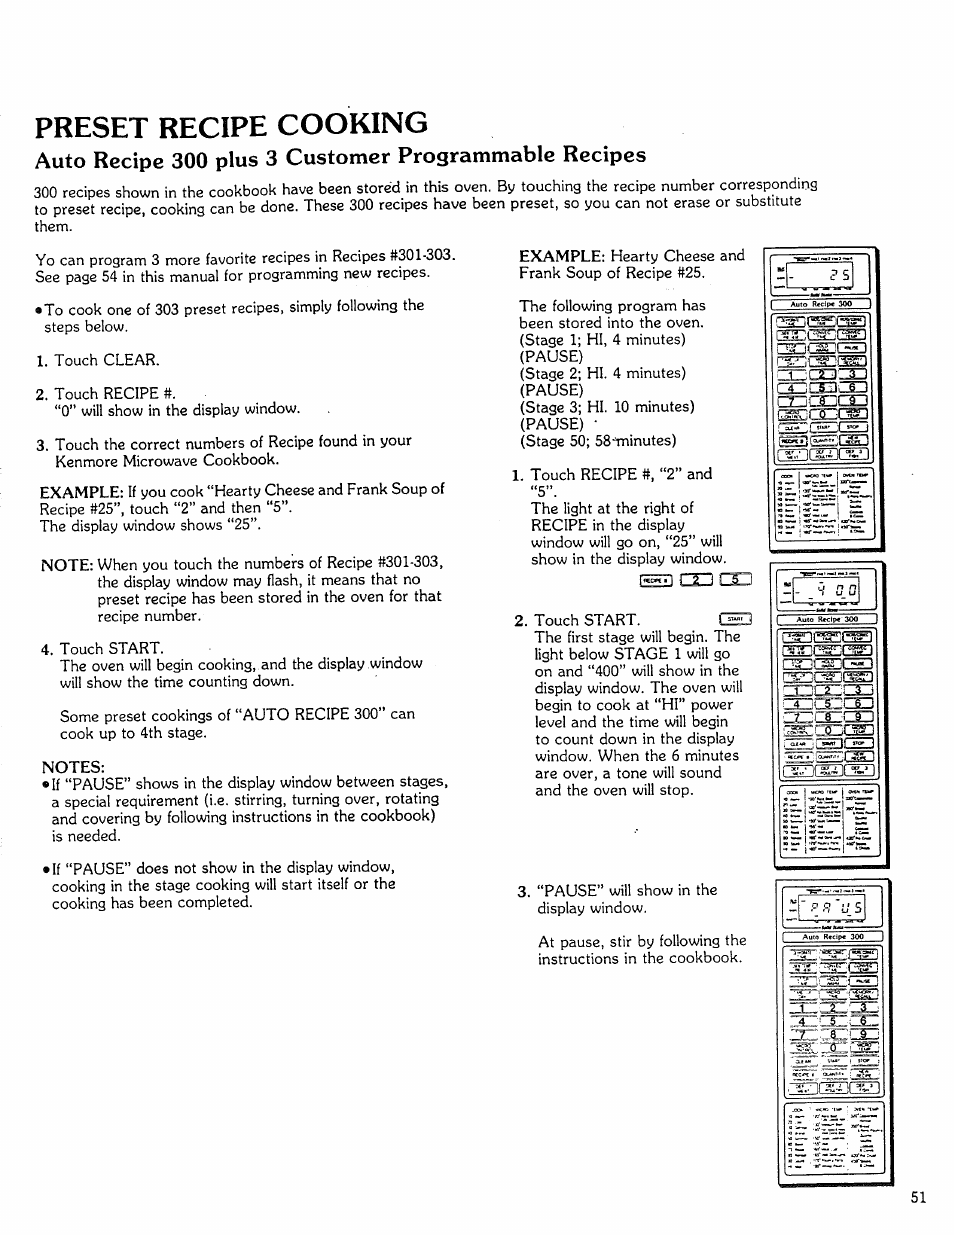 Preset recipe cooking | Kenmore Microwave Oven User Manual | Page 51 / 60